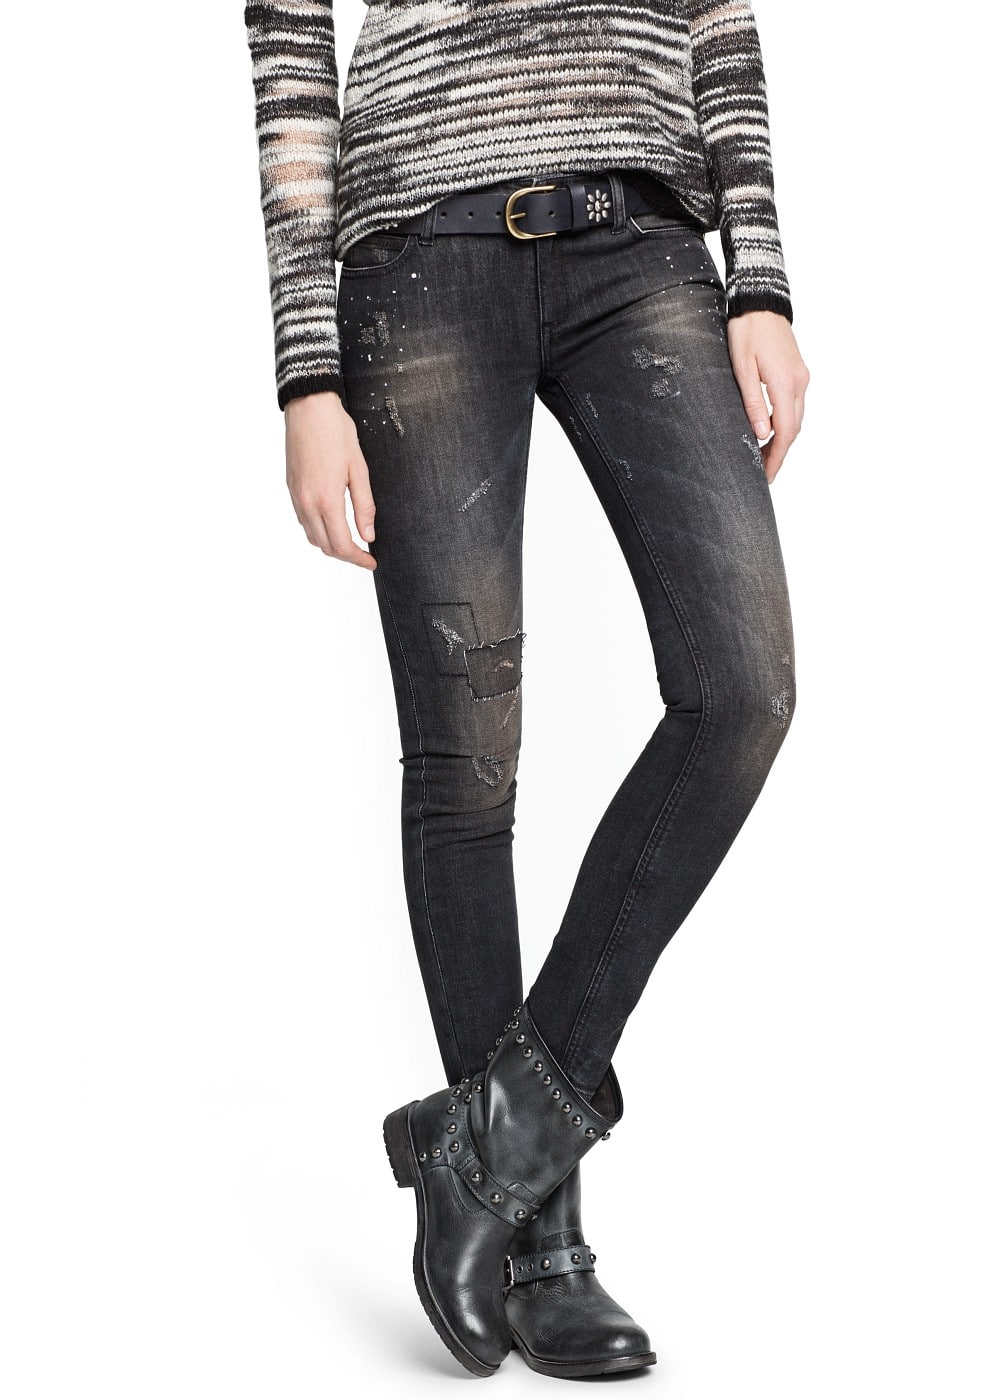 Super slim-fit black Sara jeans